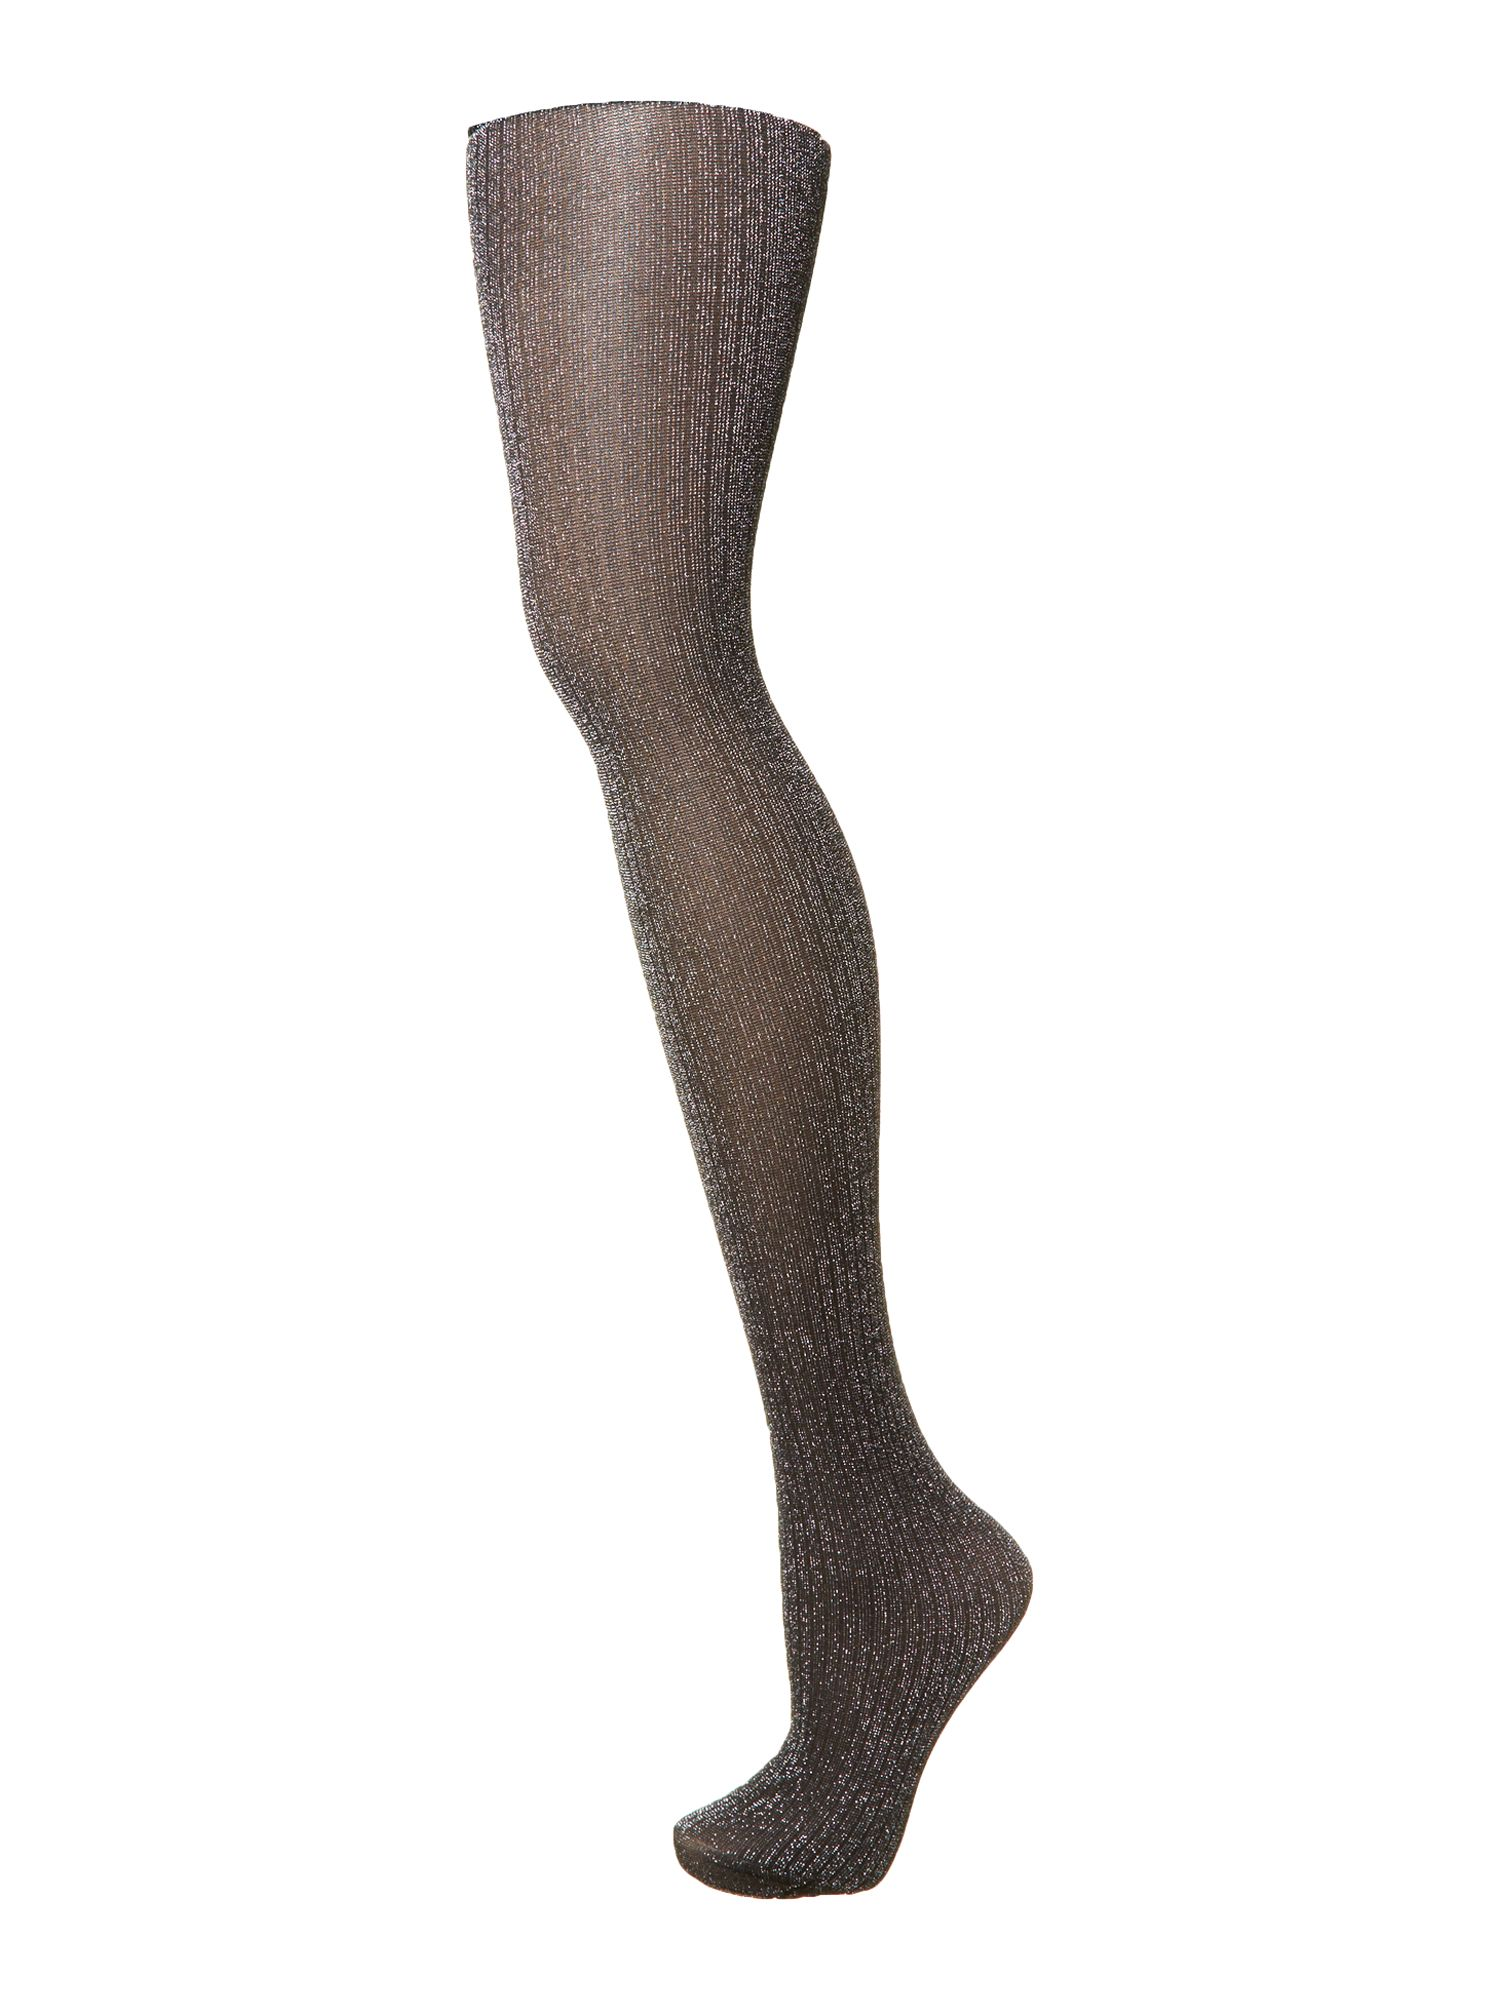 Lurex rib tights